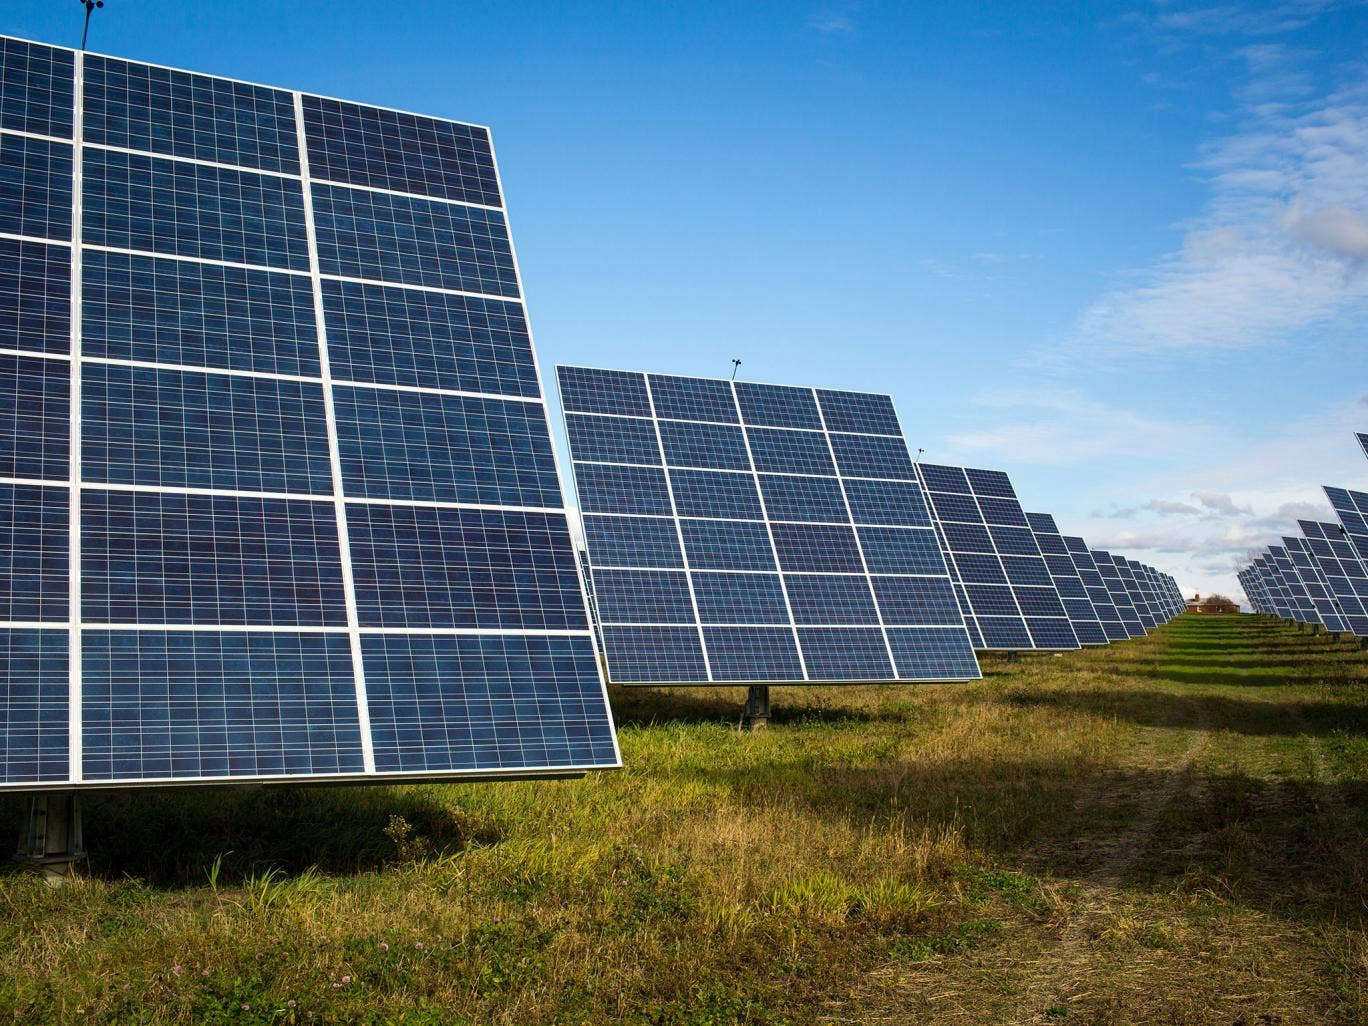 Us Town Solar Panels Suck Up All The Energy From The Sun